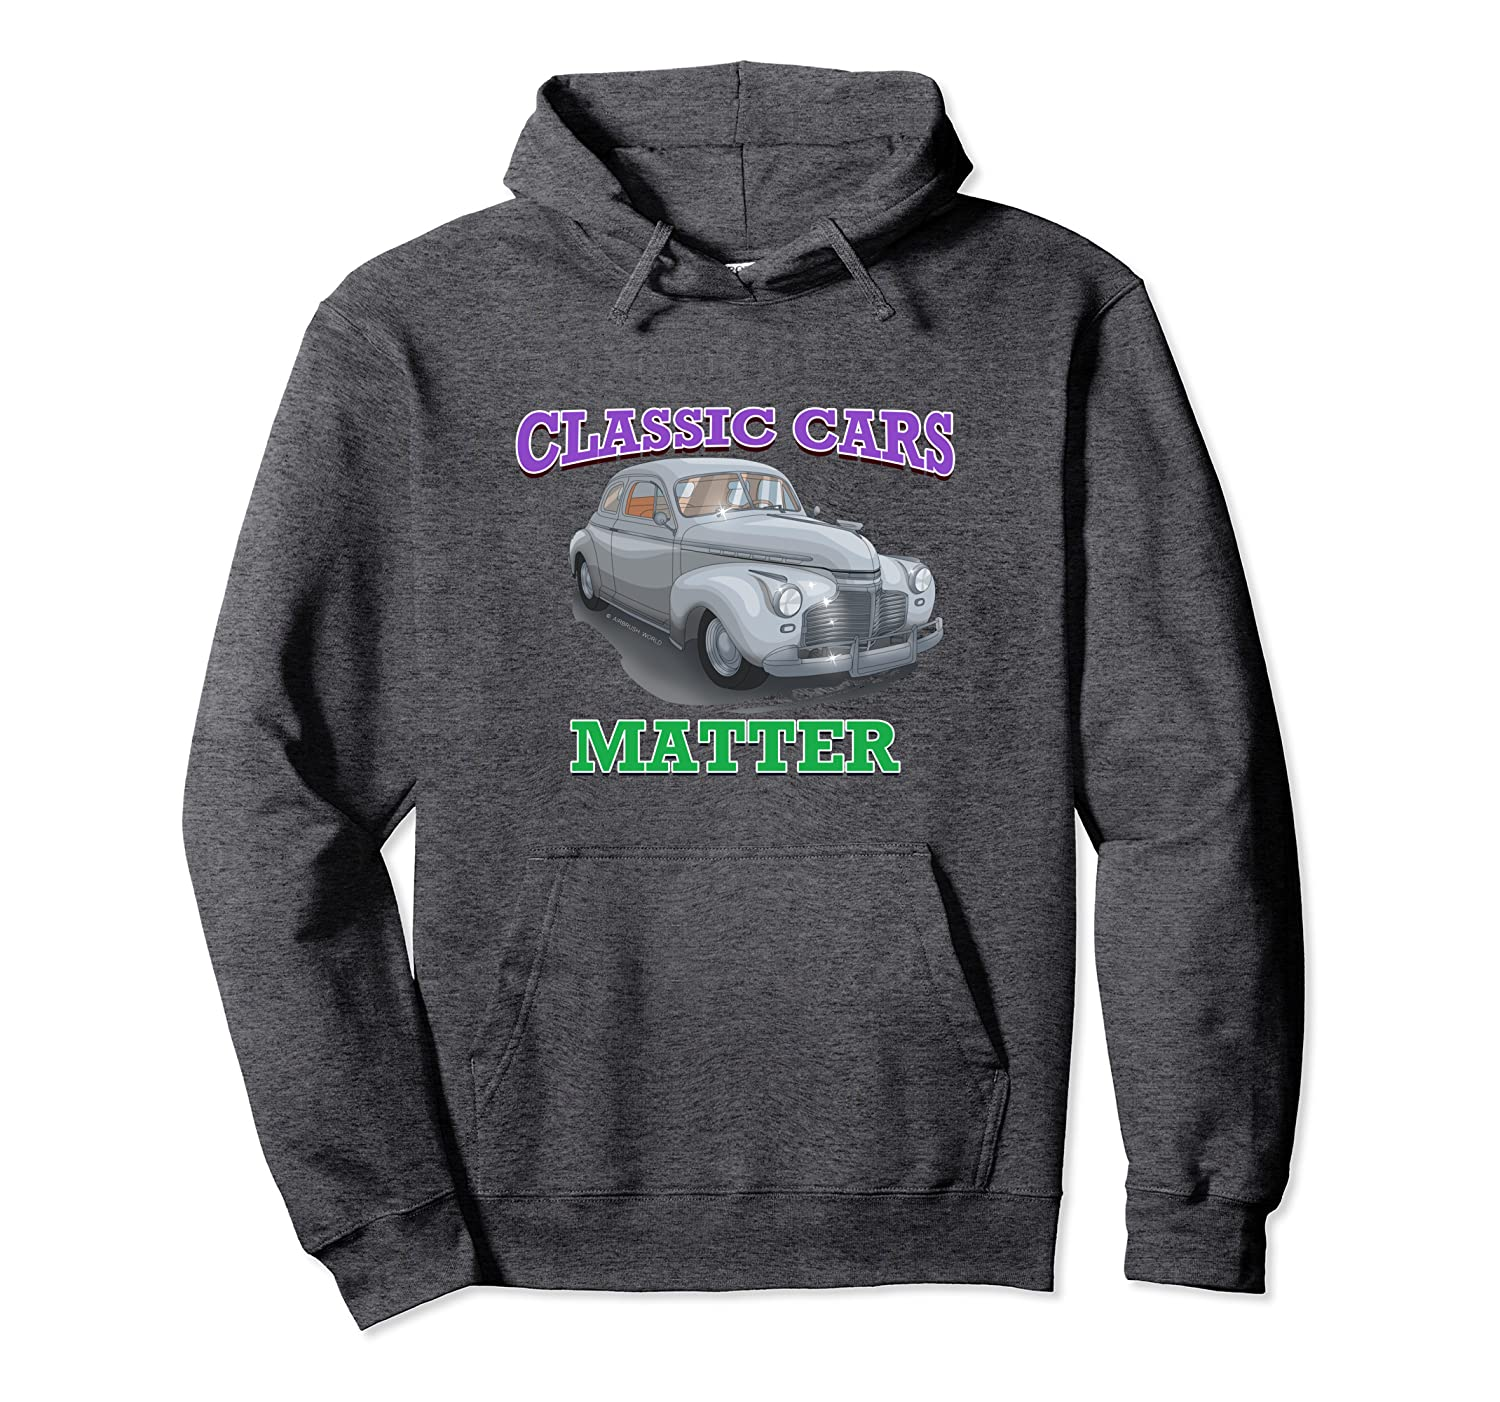 Classic Cars Matter Old Car Garage Hot Rod Tee Novelty Gift Pullover Hoodie